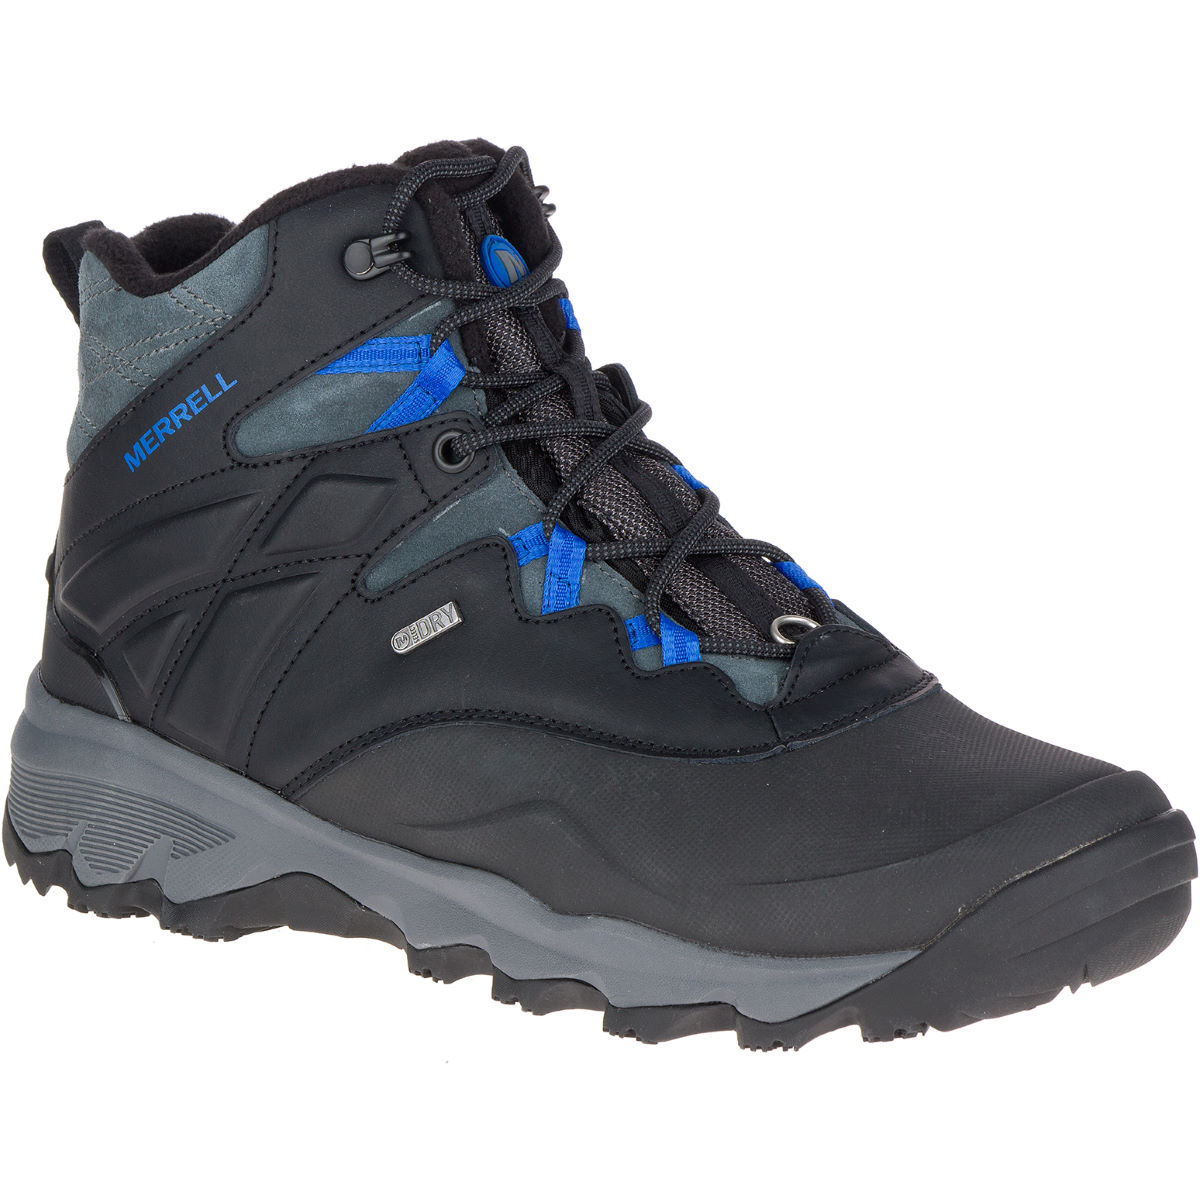 "Merrell Merrell Thermo Adventure Ice+ 6"" Waterproof Boots   Boots"